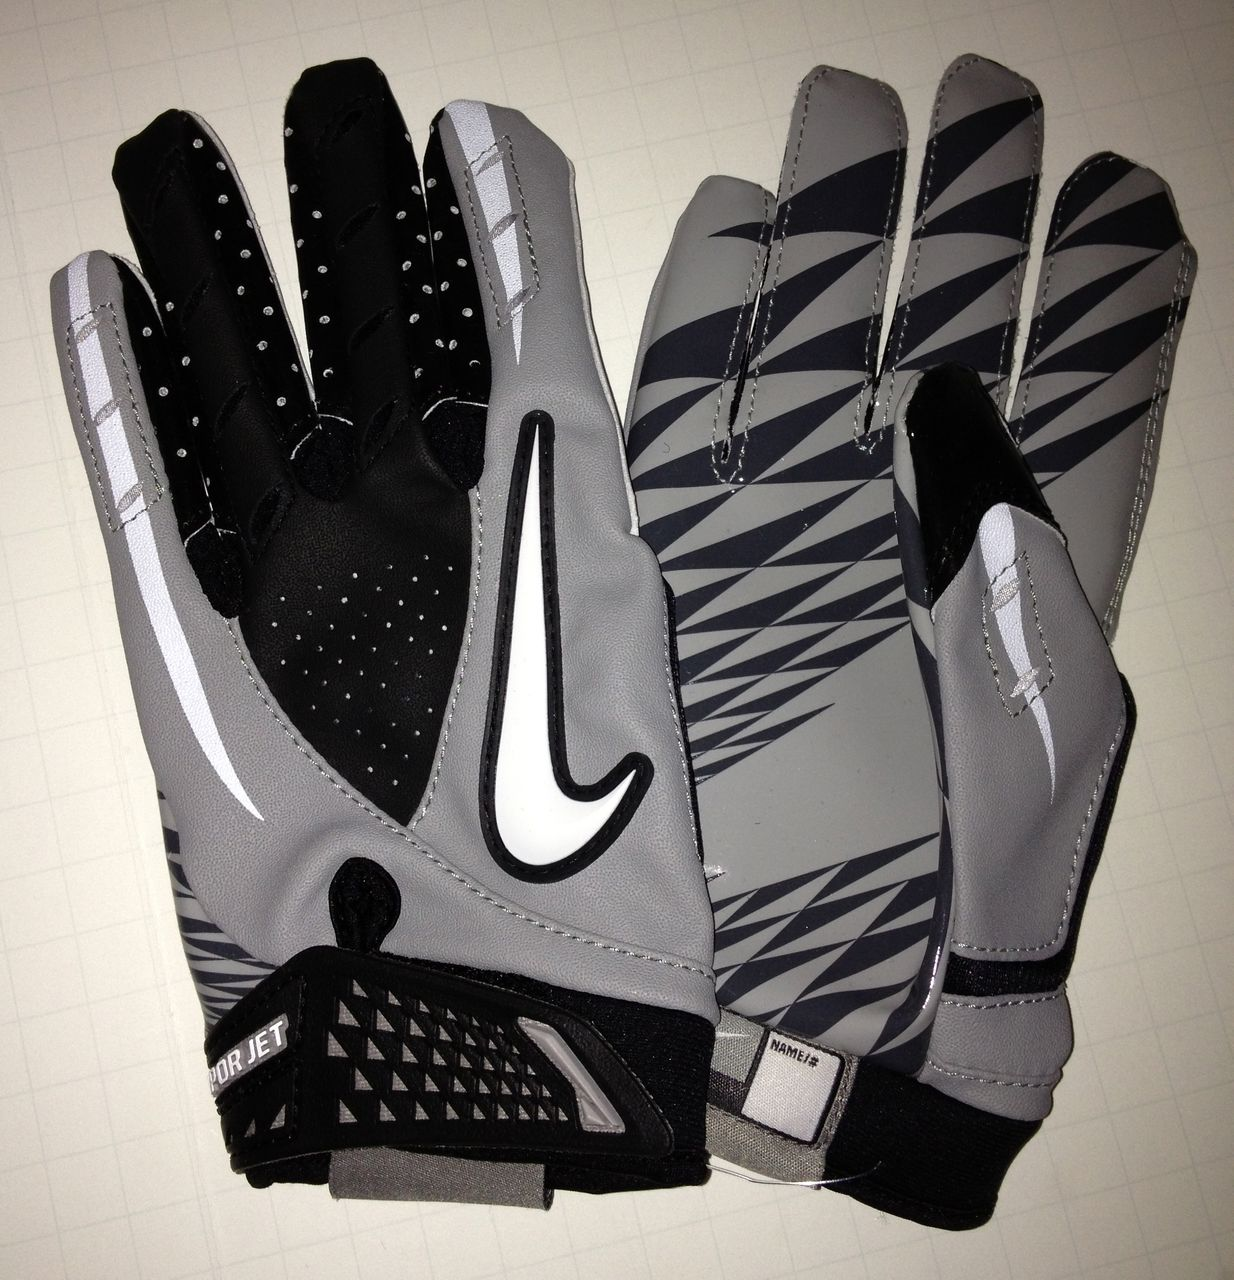 Mens nike leather gloves - Image Is Loading New Mens L Nike Vapor Jet Skilled Players